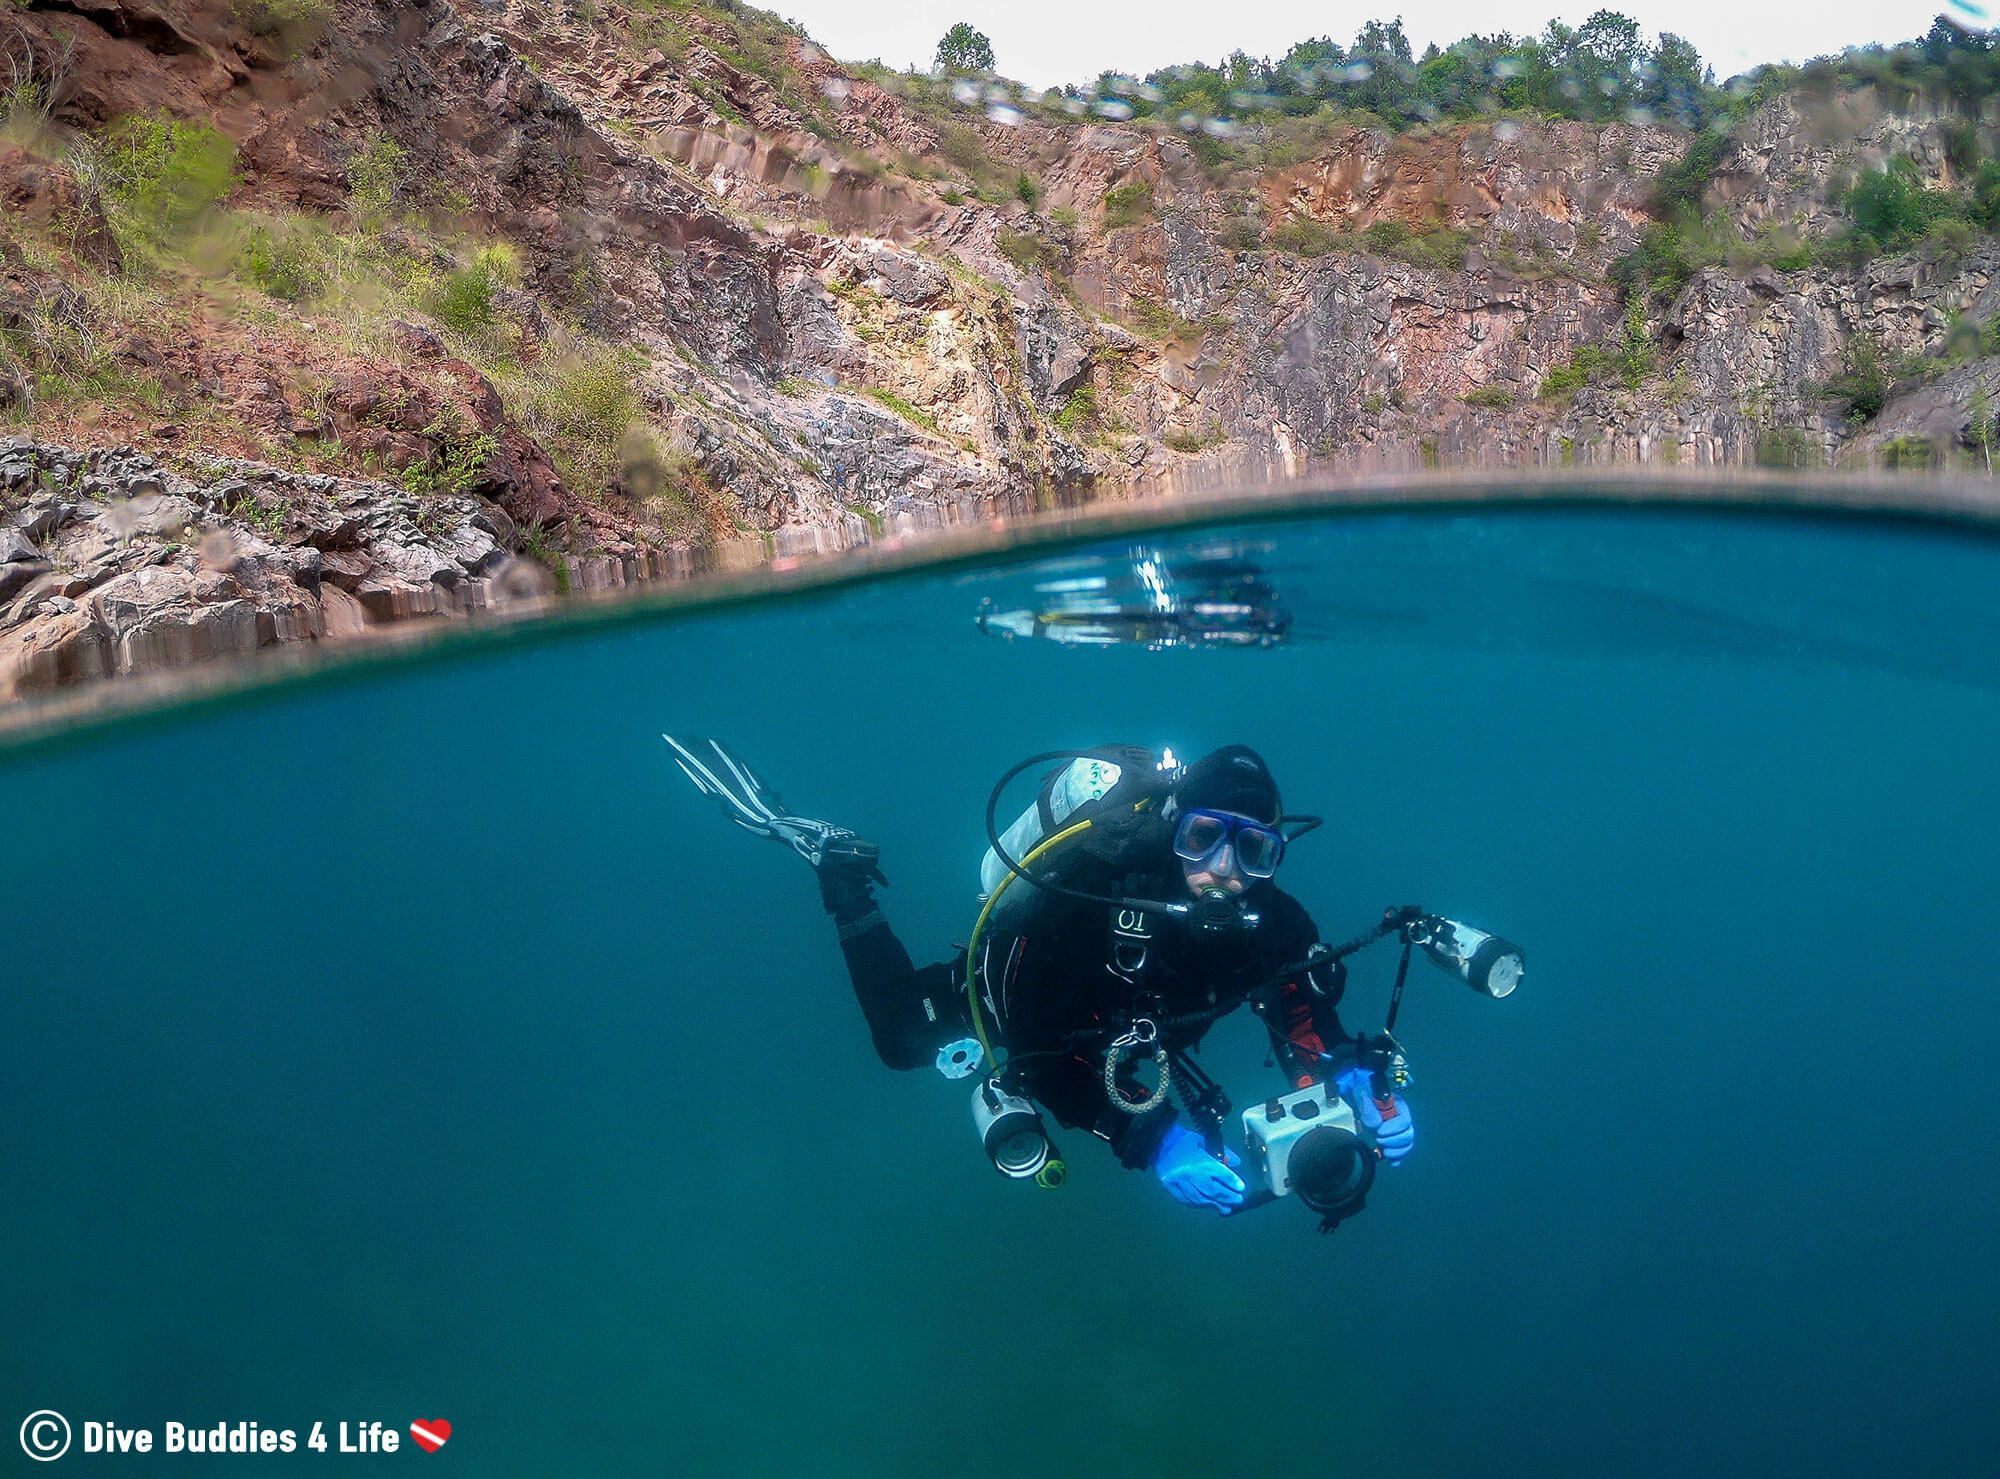 Ali Scuba Diving in the Chepstow Quarry with Her Camera, Whales, United Kingdom